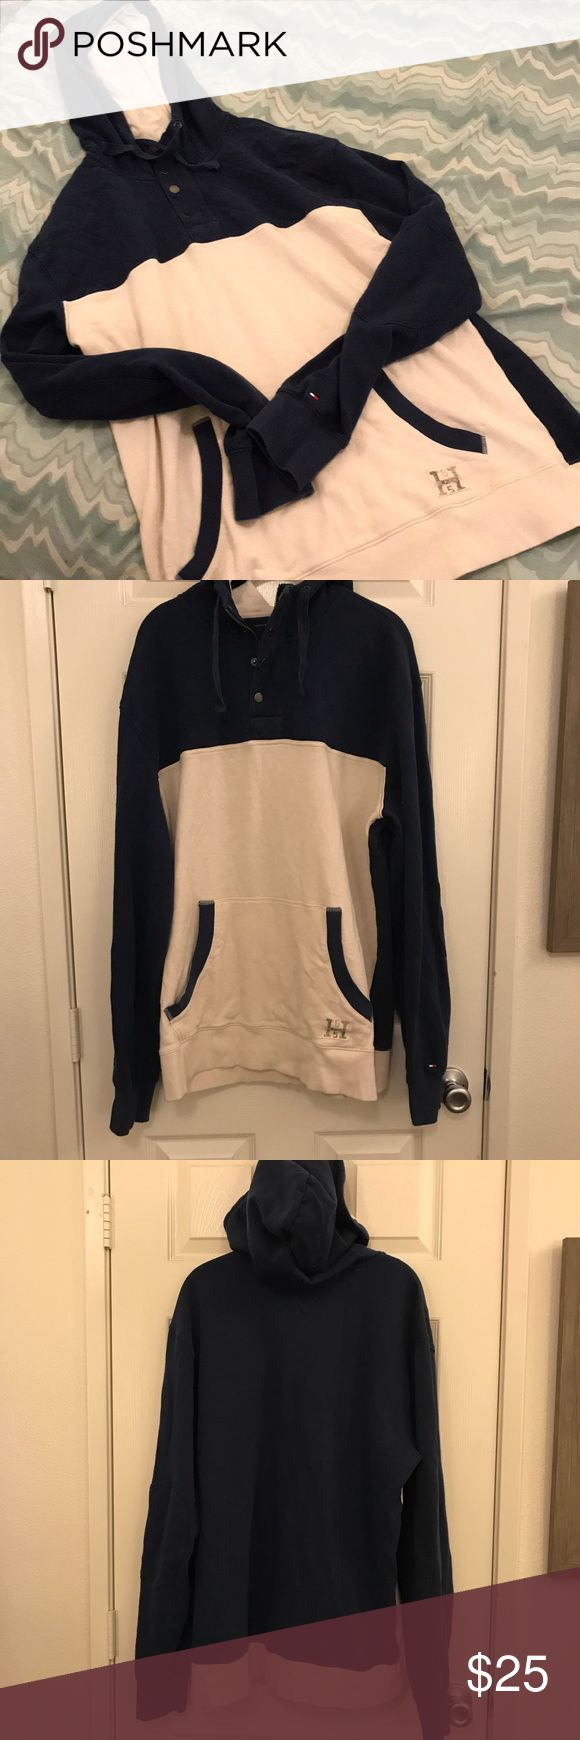 Tommy Hilfiger Men's Hoodie size XL Men's Tommy Hilfiger Hoodie. Navy and a creamy white color combo. Kangaroo pocket and patches on the elbow. Super cozy and comfortable.  Medium weight.  Size XL Tommy Hilfiger Shirts Sweatshirts & Hoodies